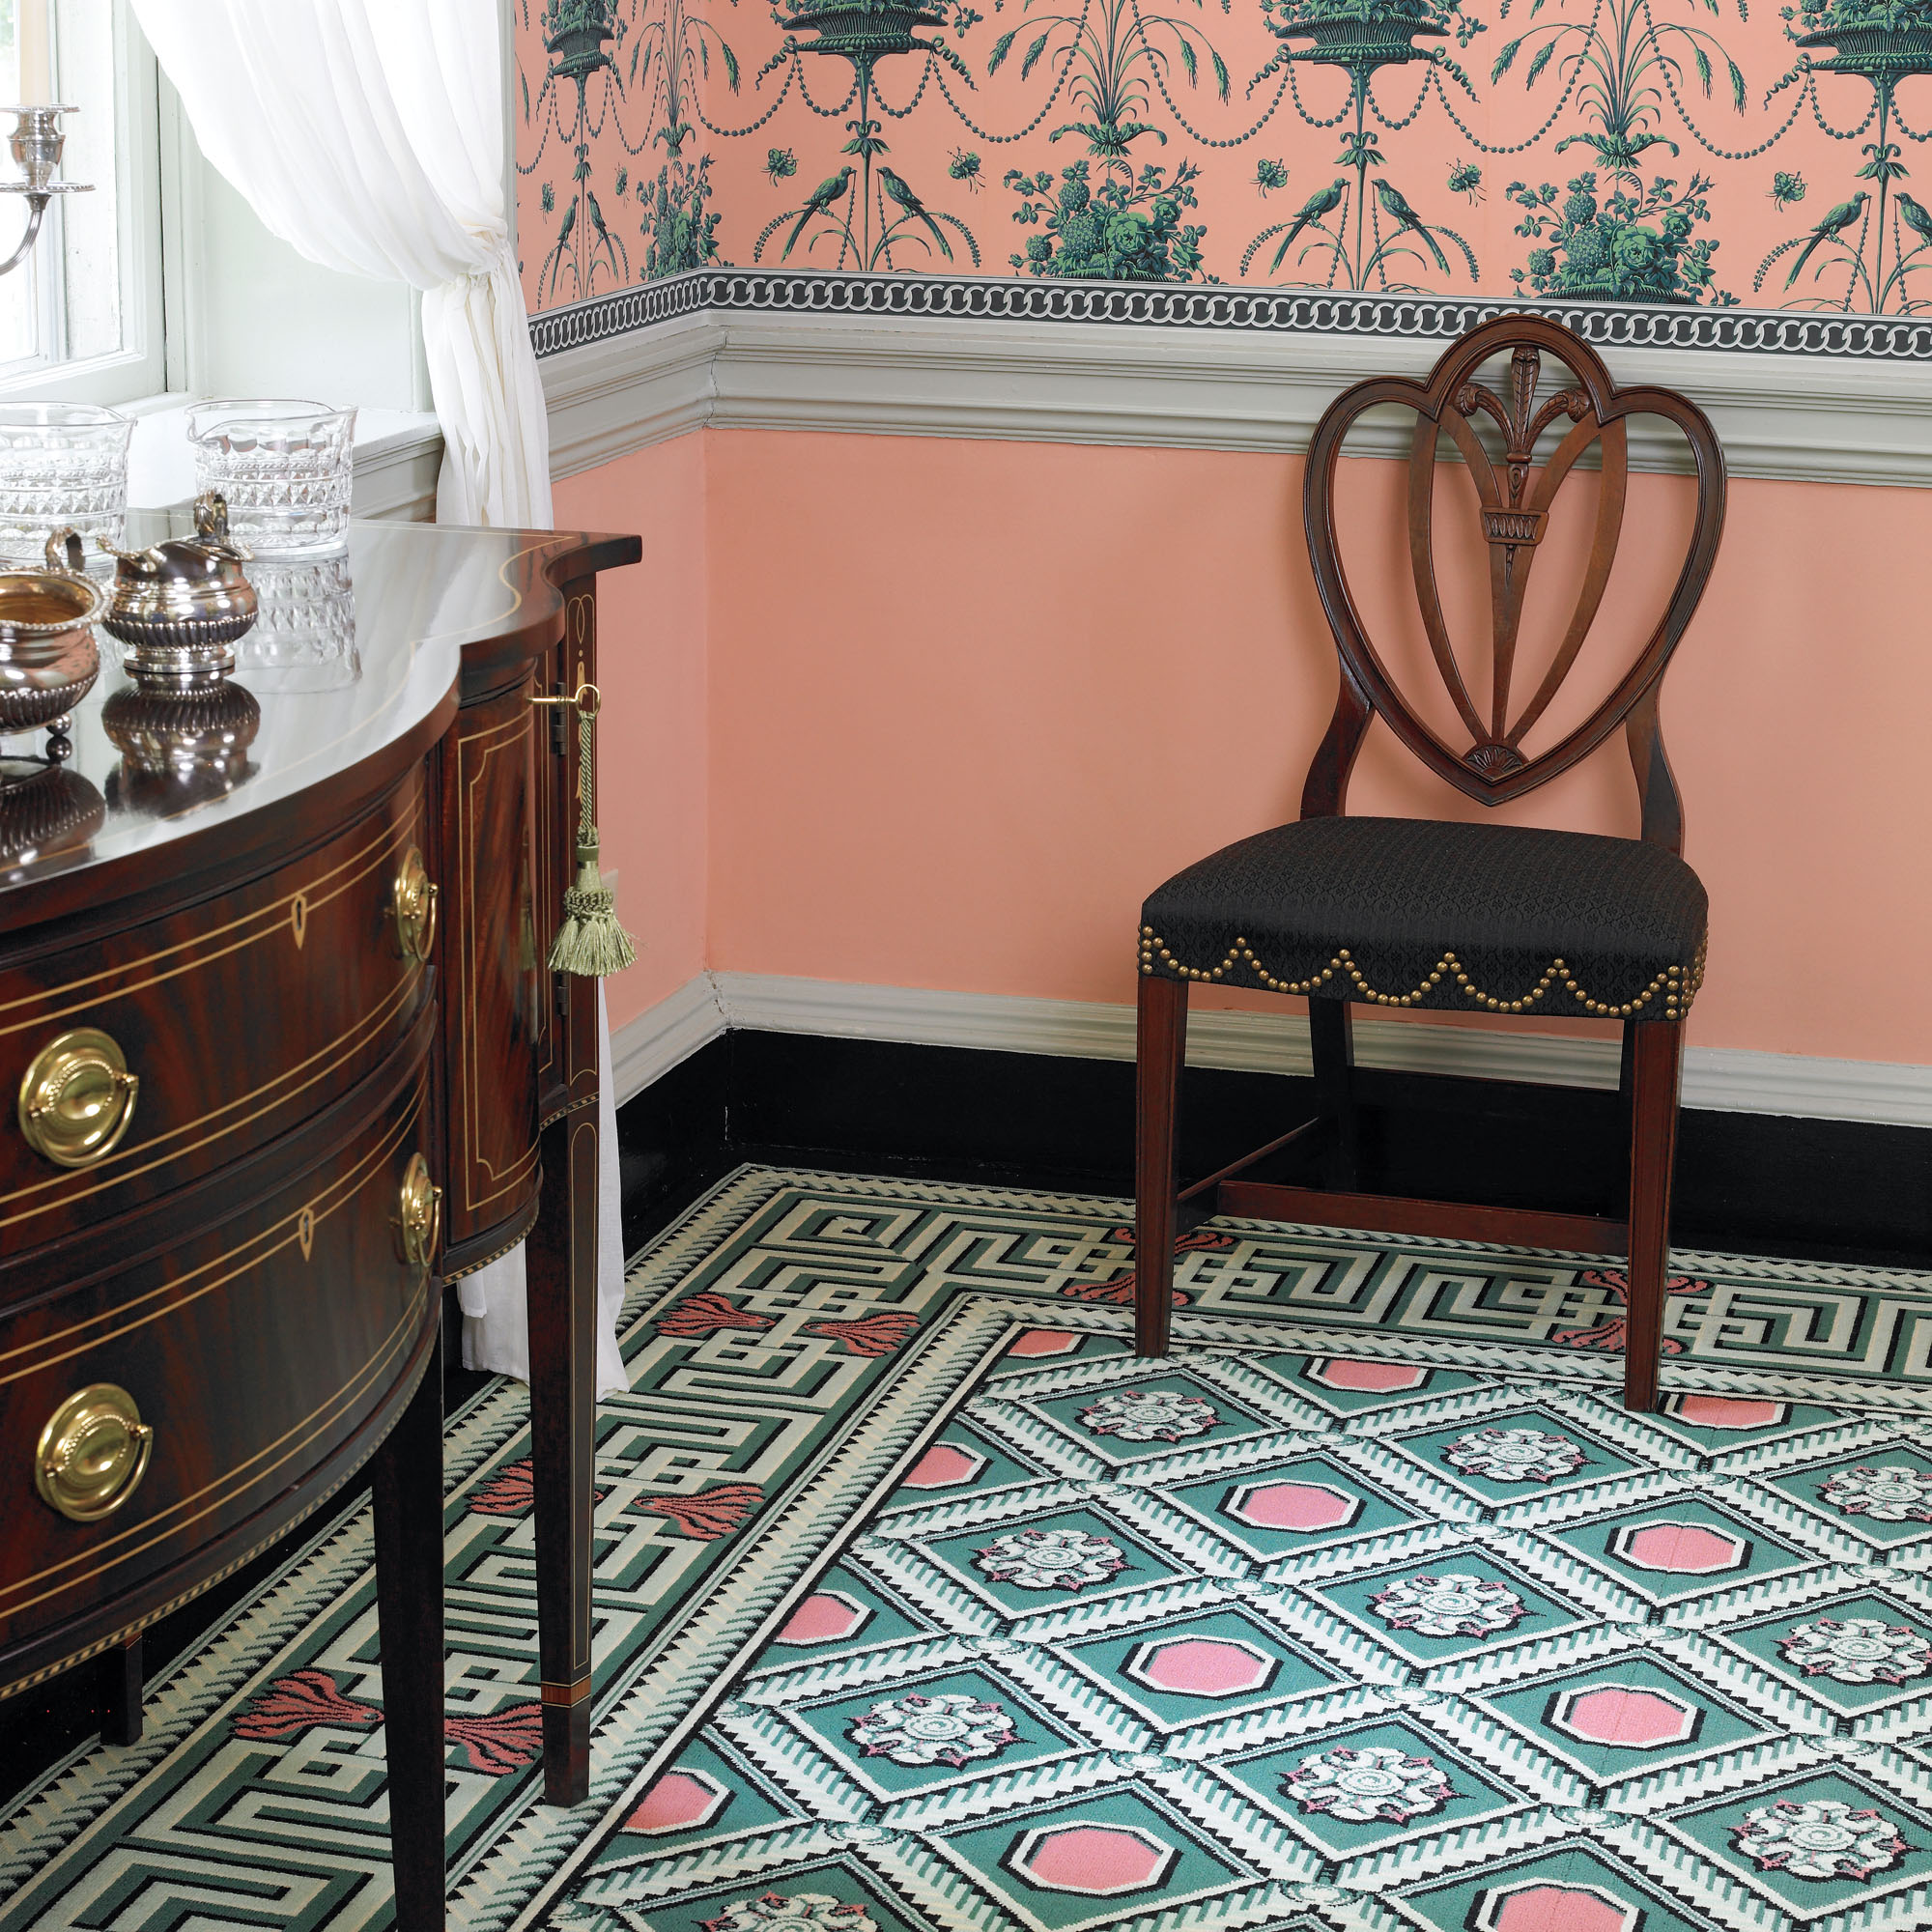 1803 reproduction Brussels carpet, from J.R. Burrows